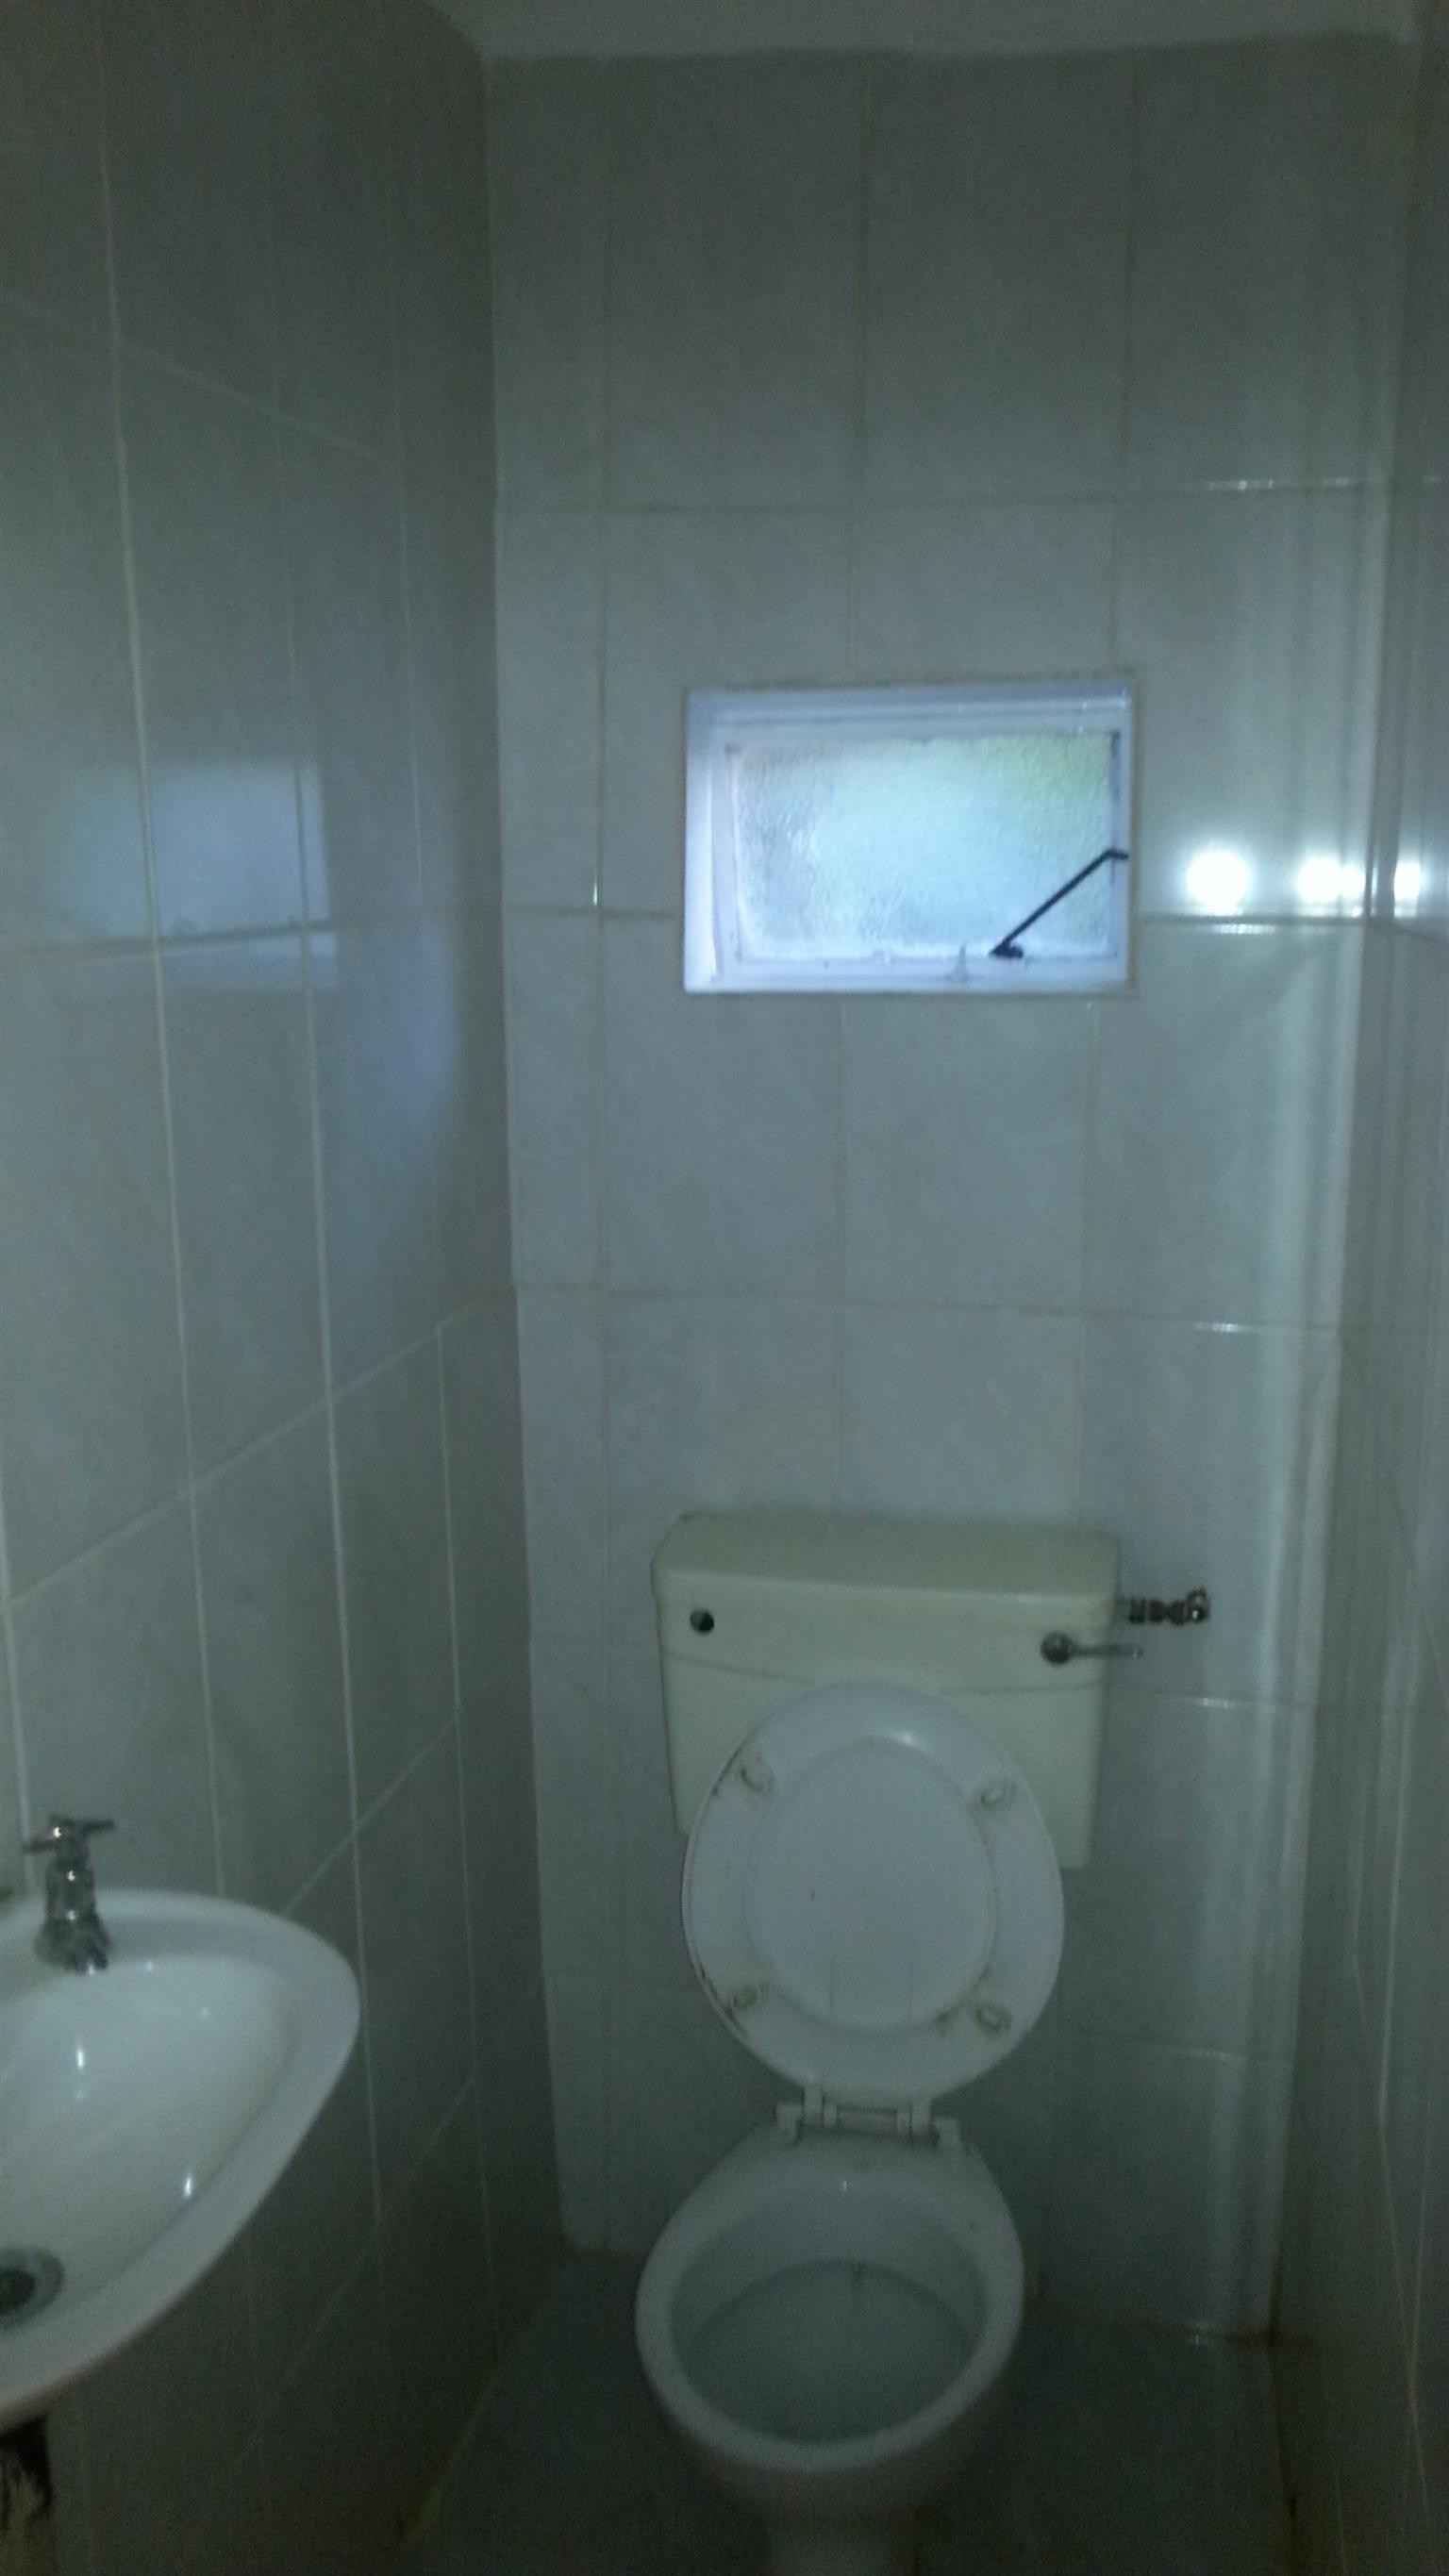 Batchelor flat R 2 500,00 pm ( water, lights included and unlimited internet )